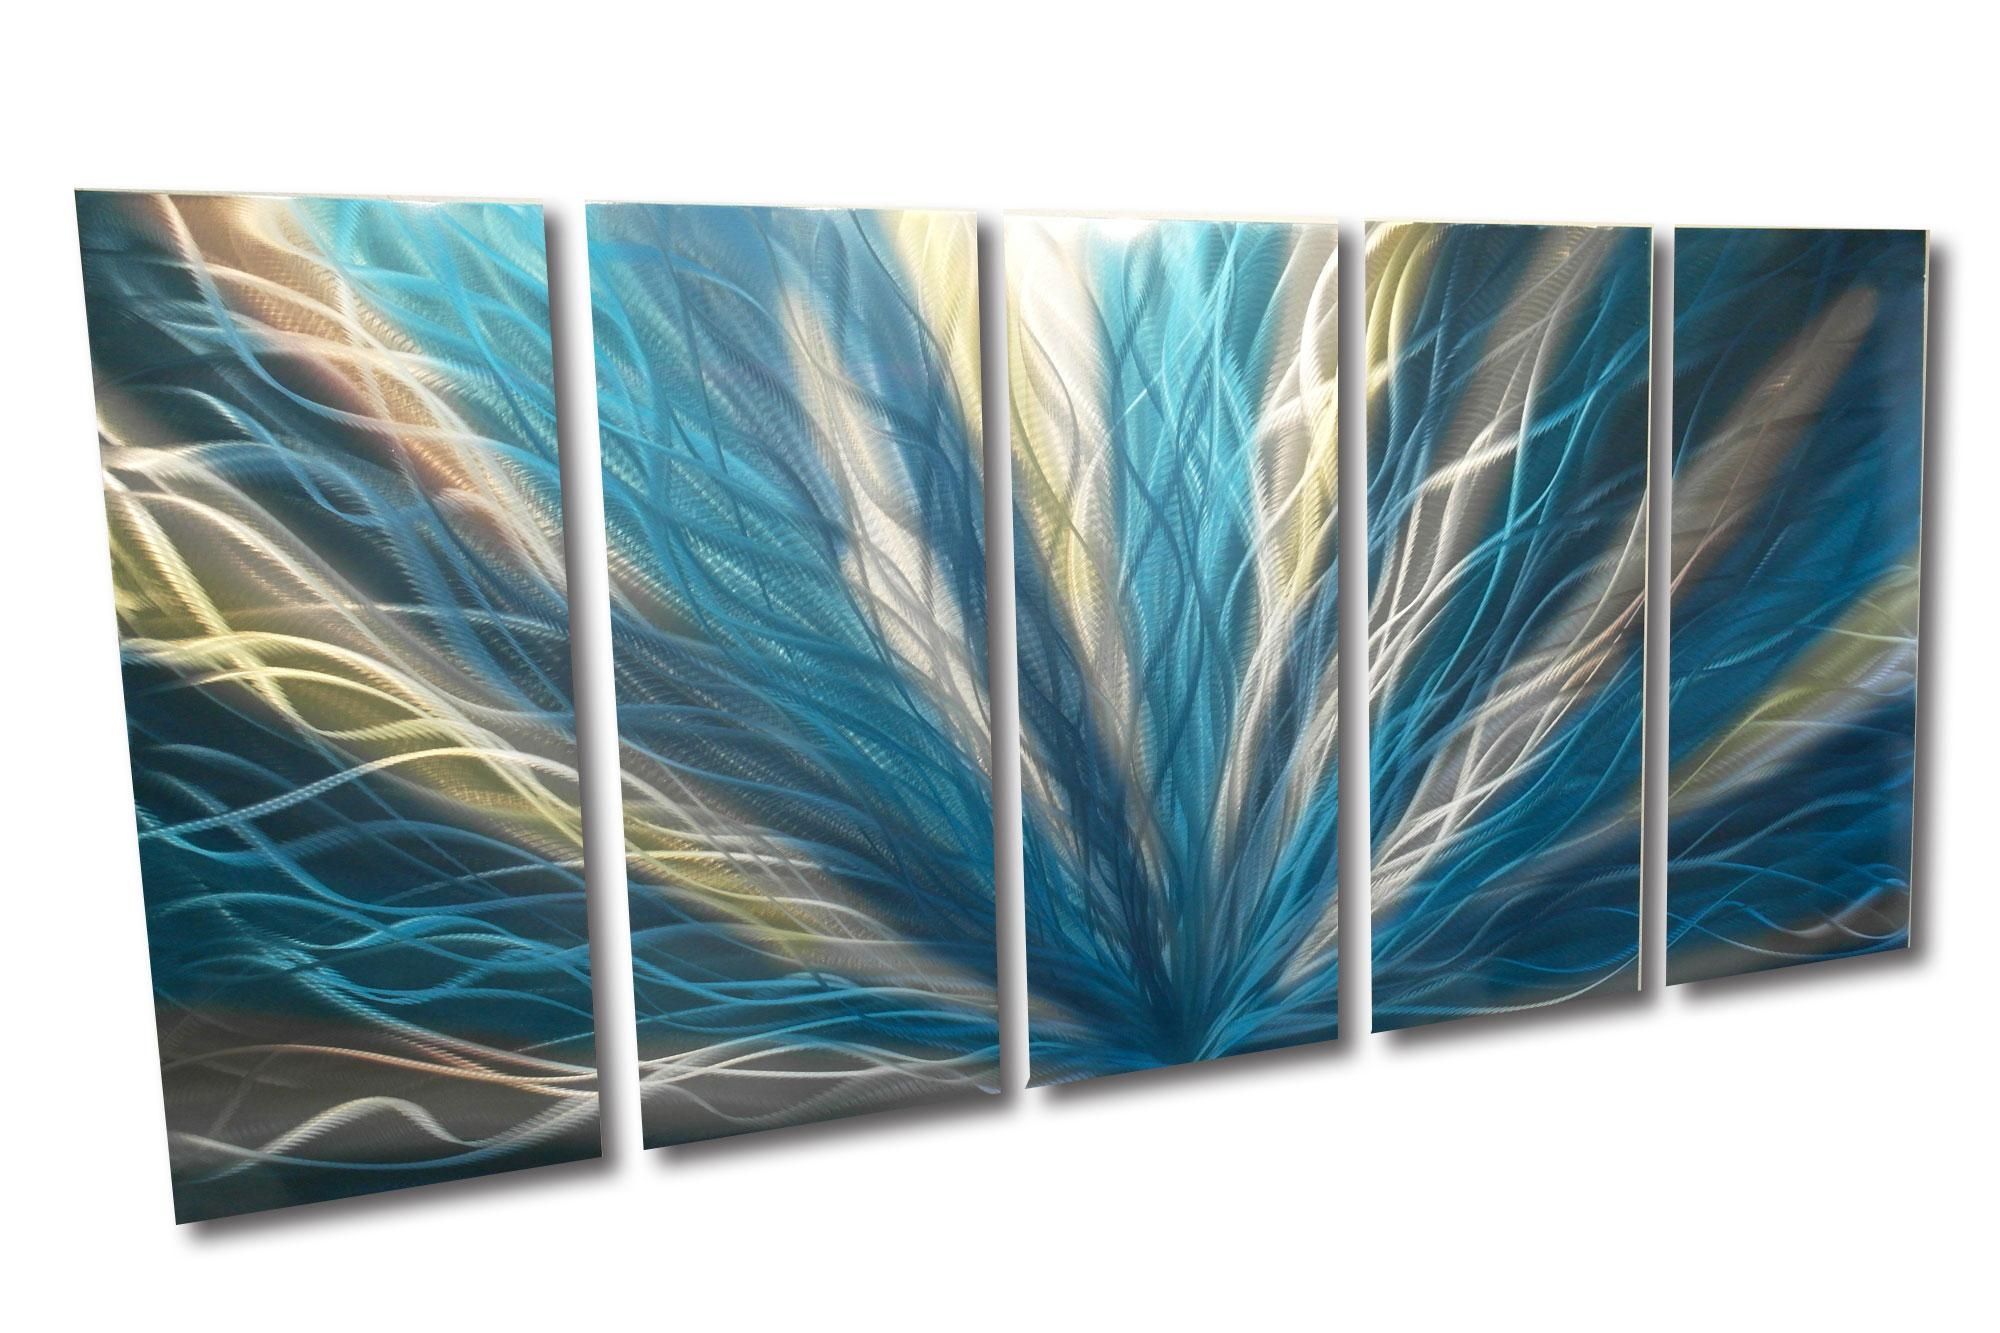 Radiance Teal 36X79 – Metal Wall Art Abstract Sculpture Modern With Teal Metal Wall Art (Image 14 of 20)